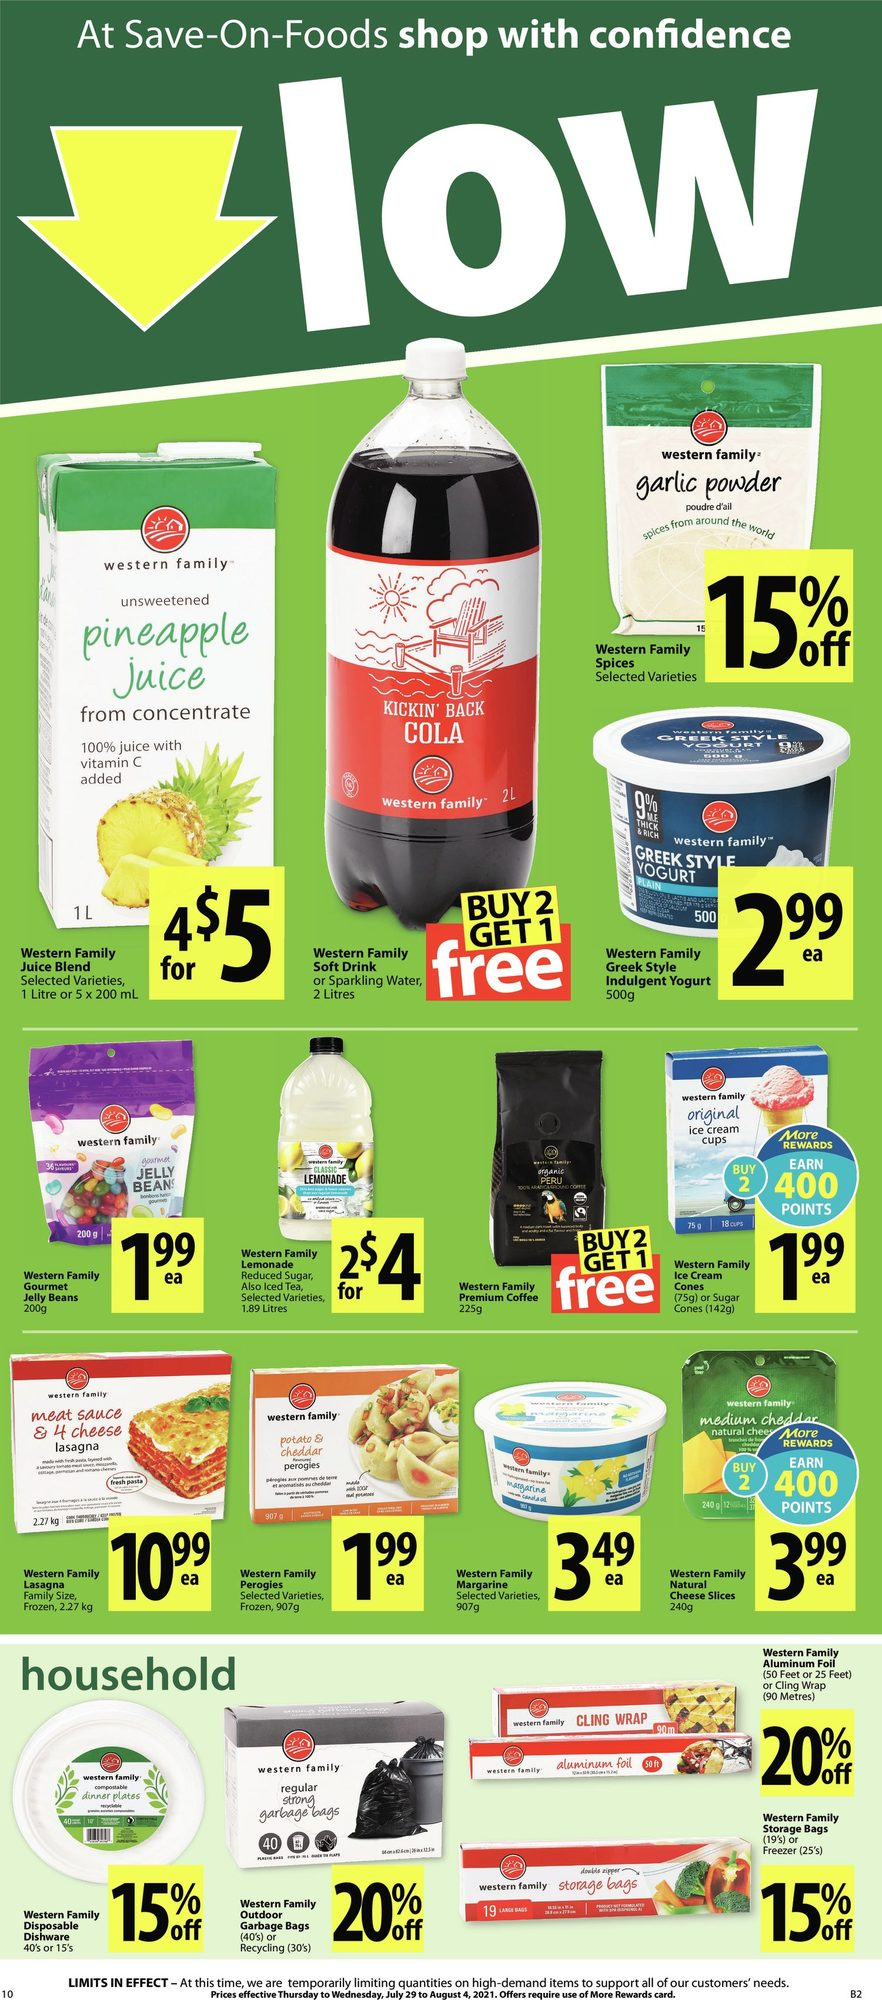 Save-On-Foods - Weekly Flyer Specials - Page 10